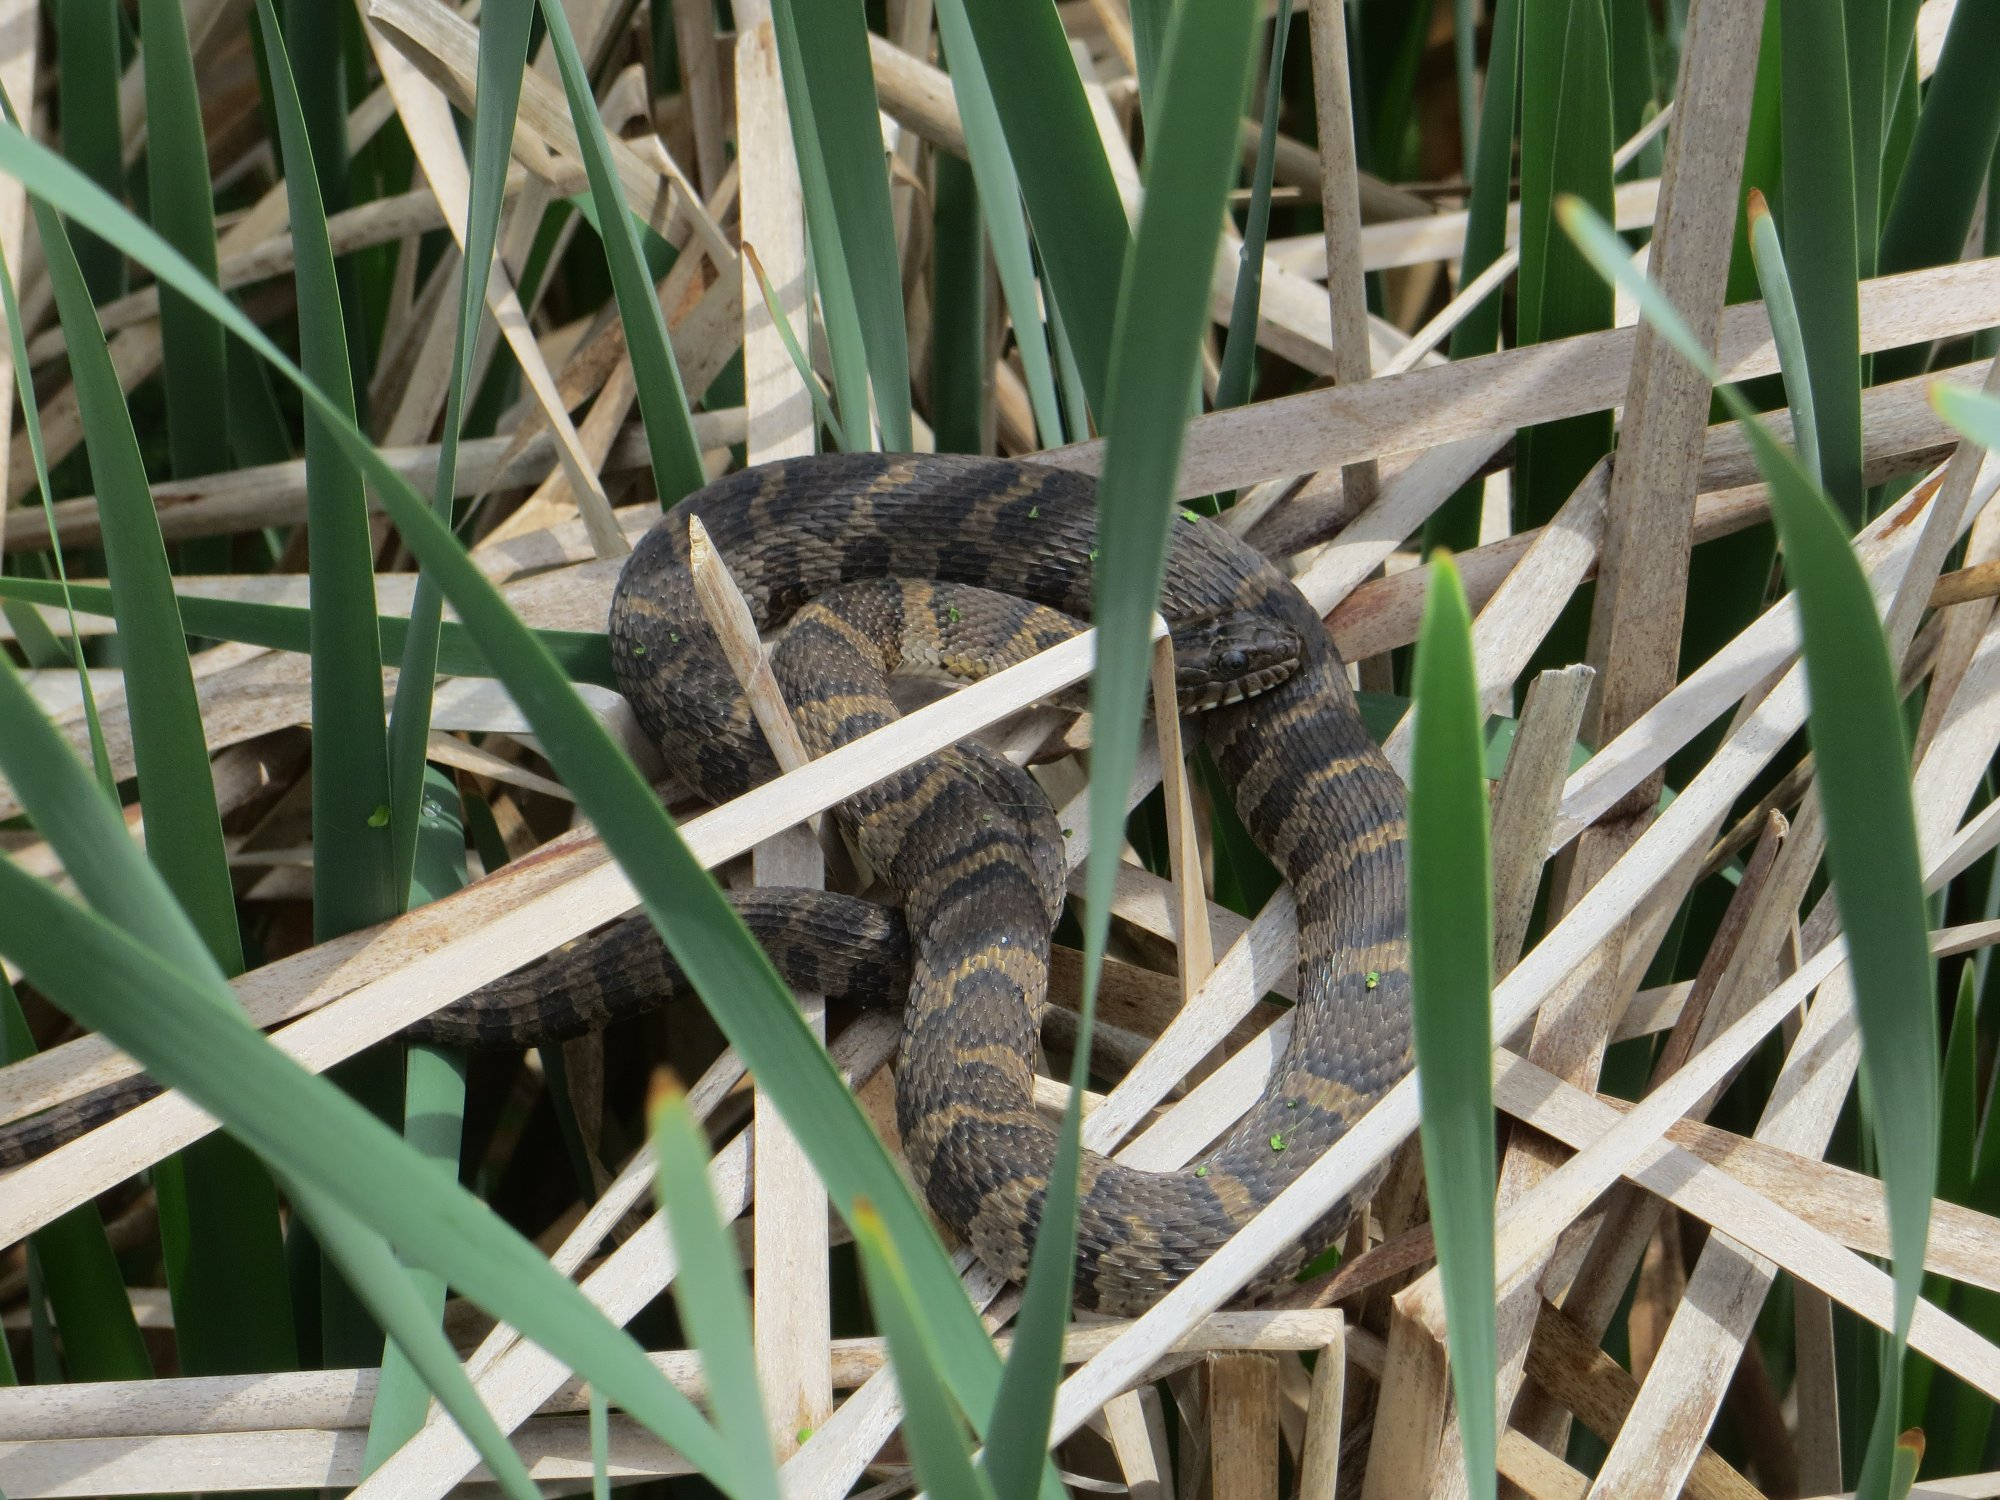 Northern Water Snake (Nerodia sipedon) - Reptiles and ...